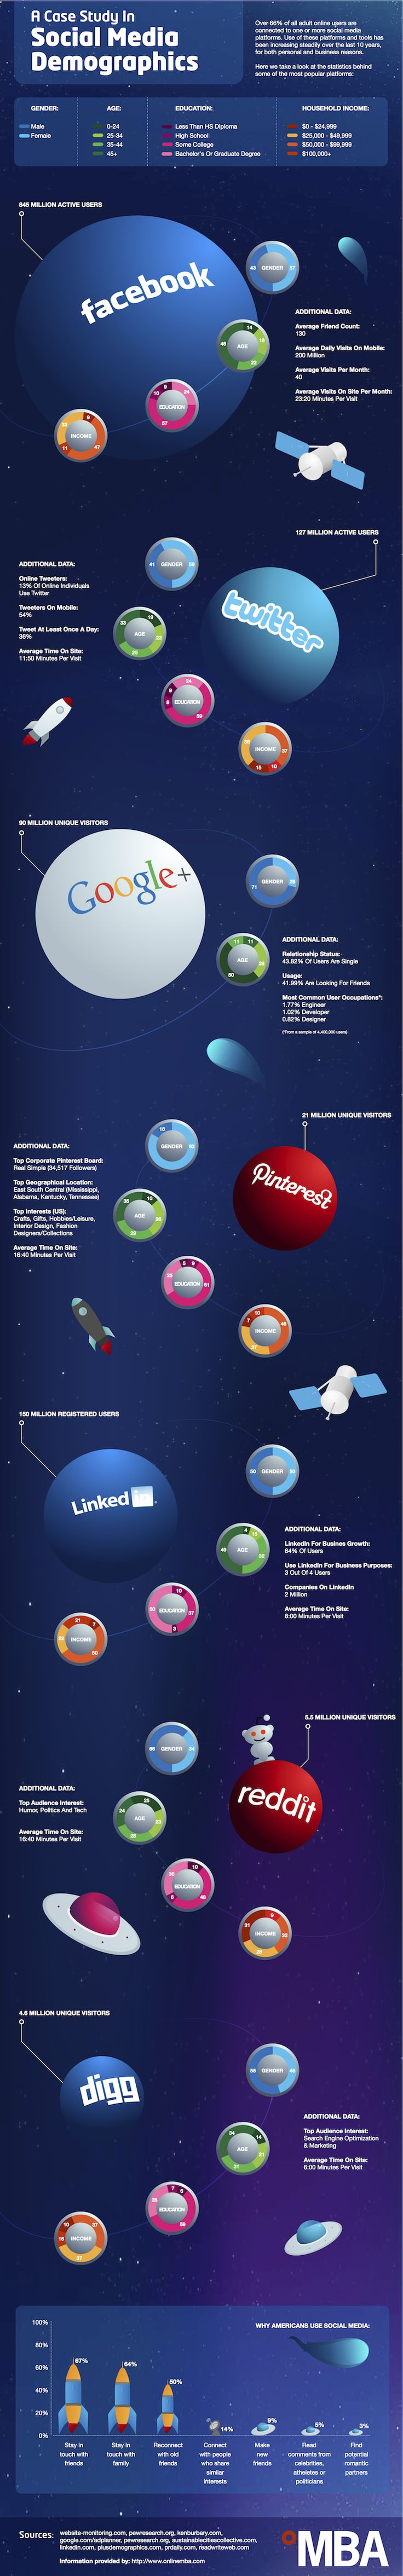 The Social Media Universe. #infographic